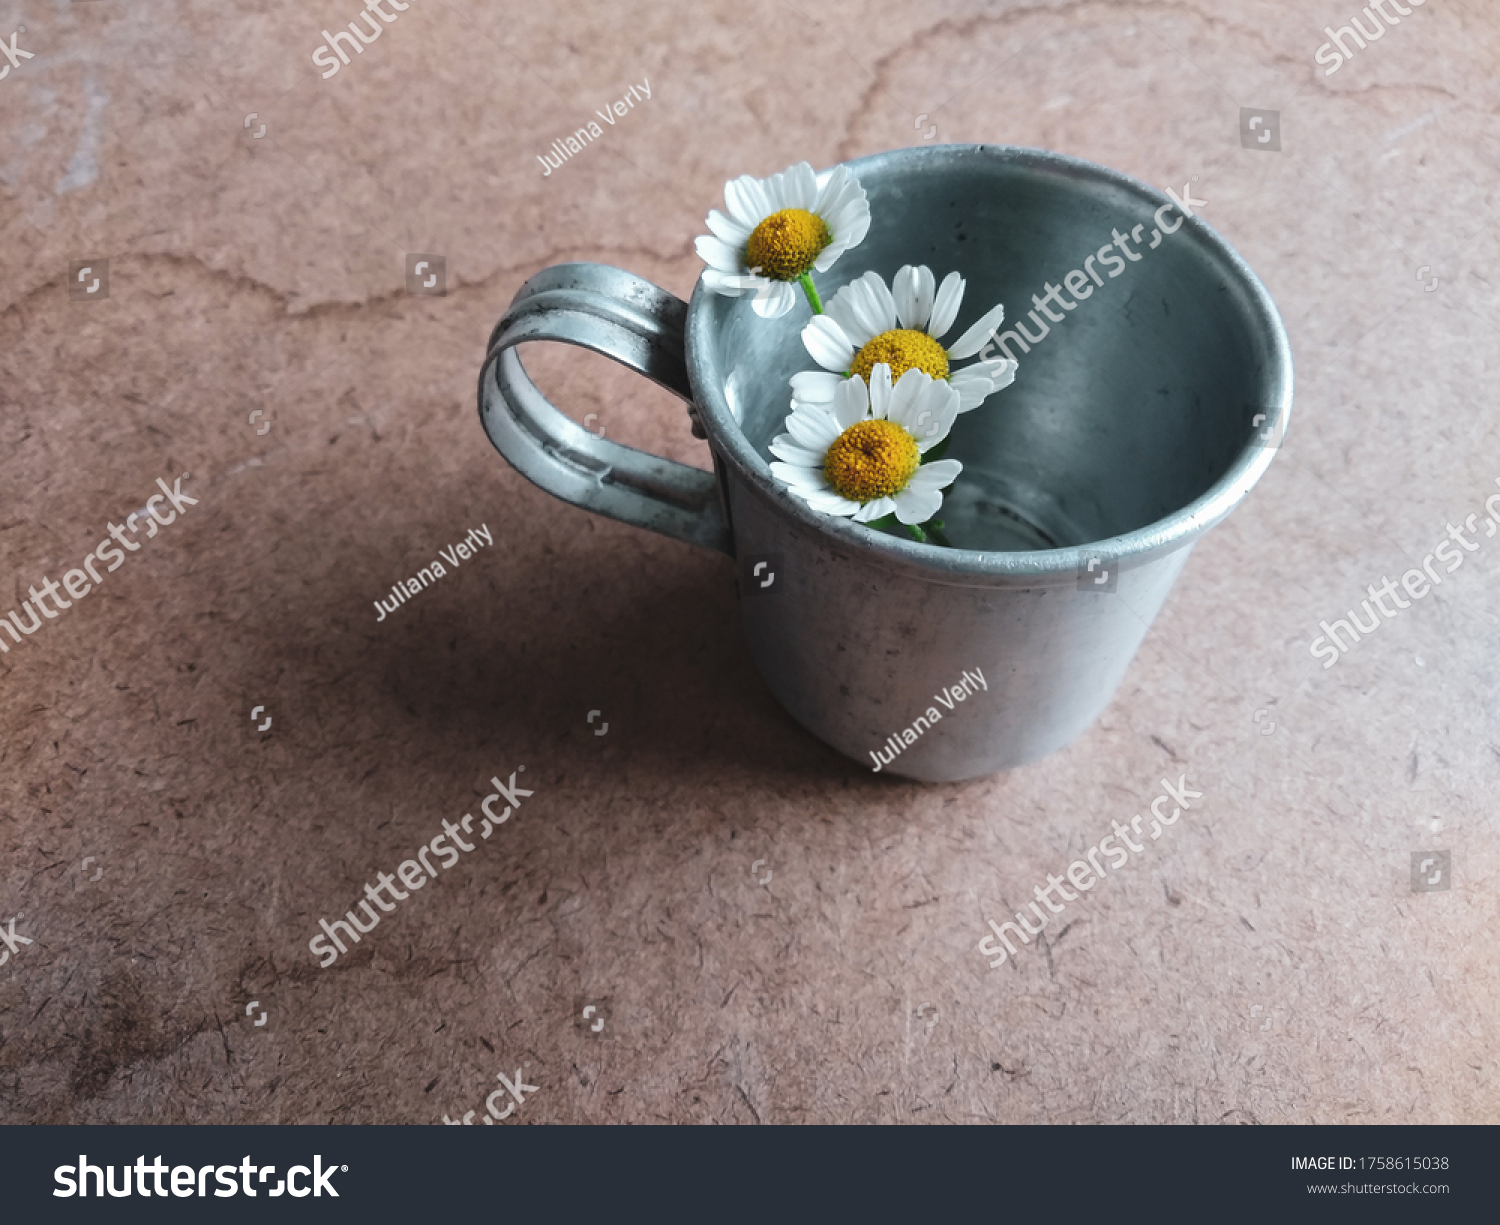 antique mug composition with small daisies on texture background